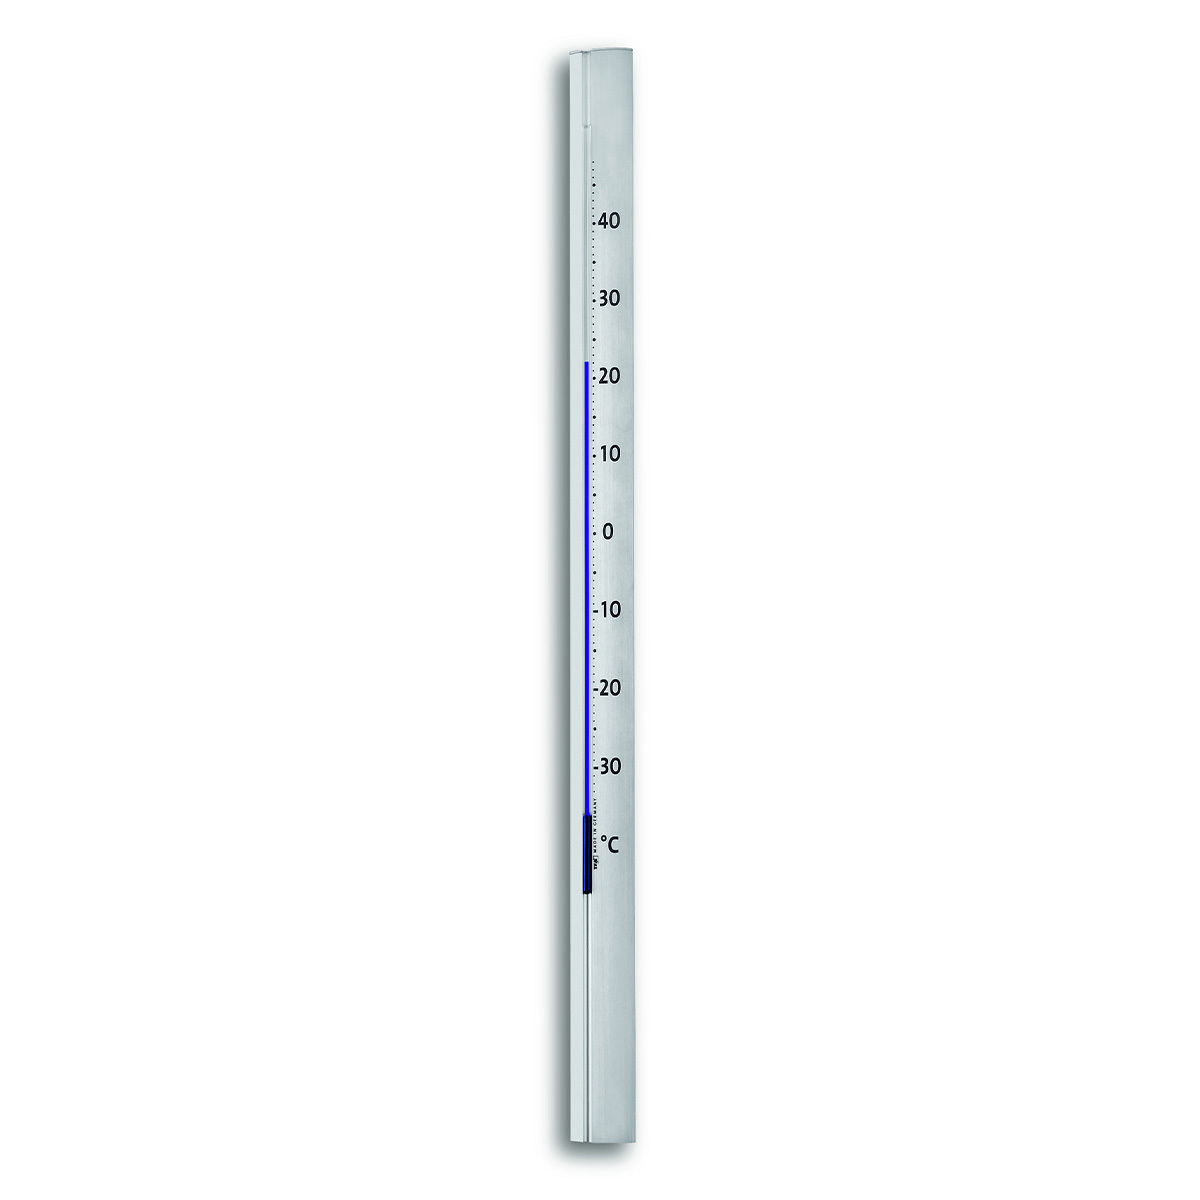 12-2005-analoges-design-gartenthermometer-central-park-1200x1200px.jpg